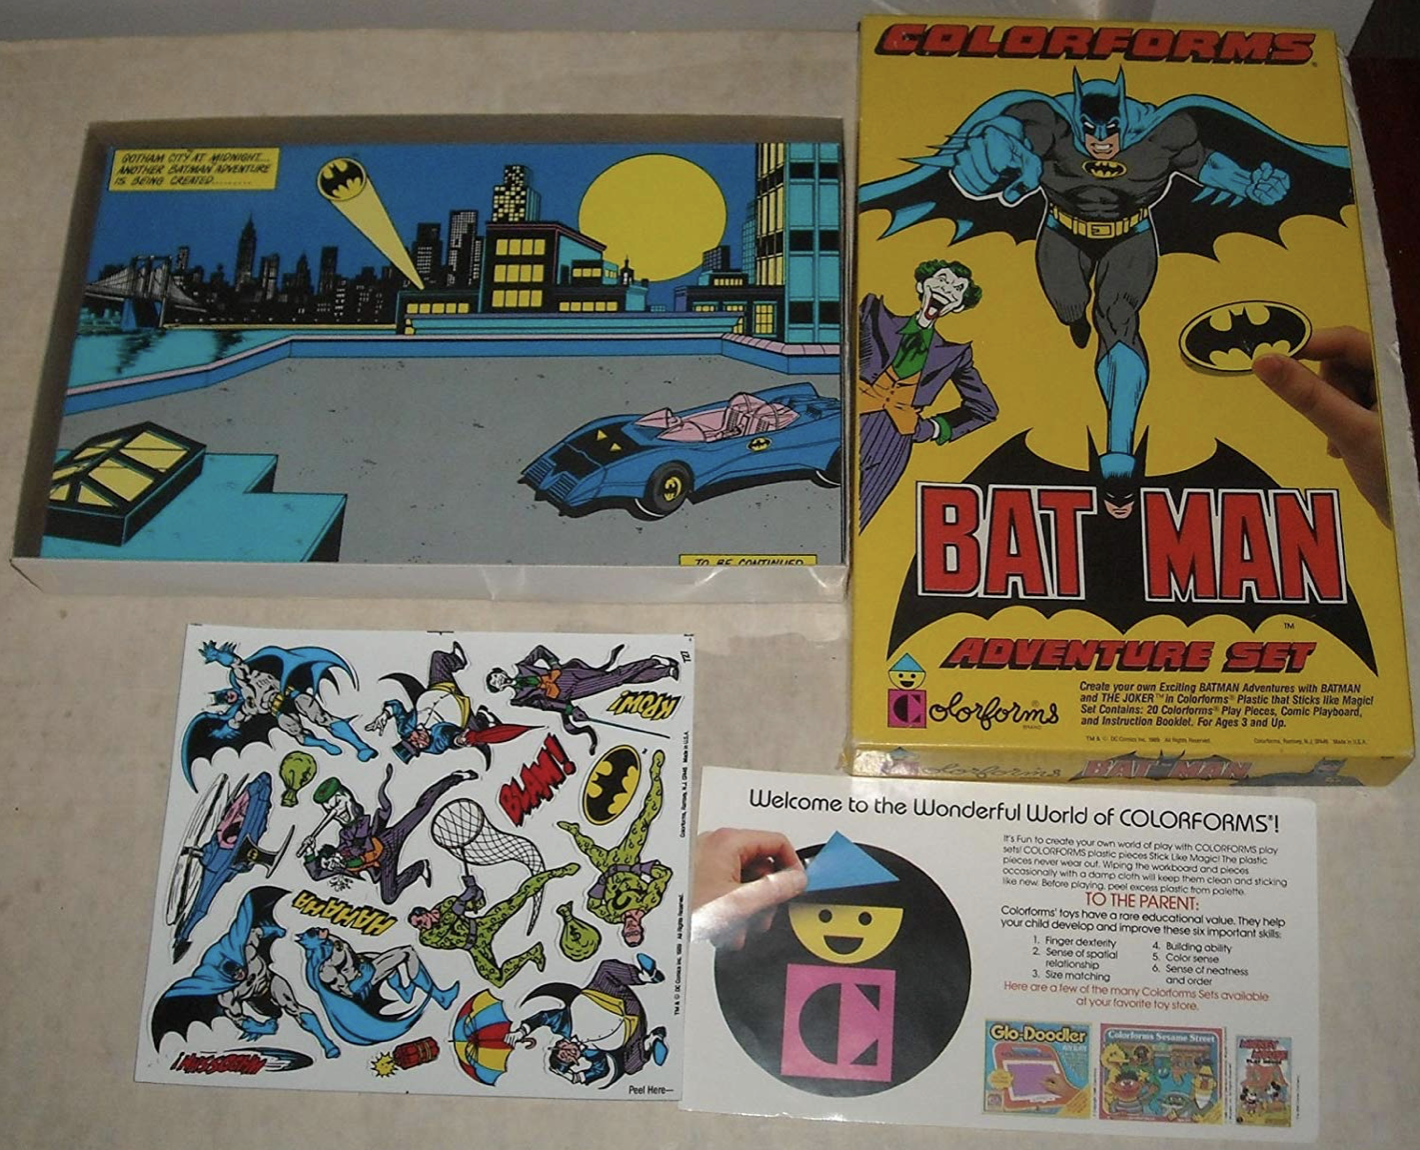 Batman Colorforms like I had as a child. Courtesy of Amazon